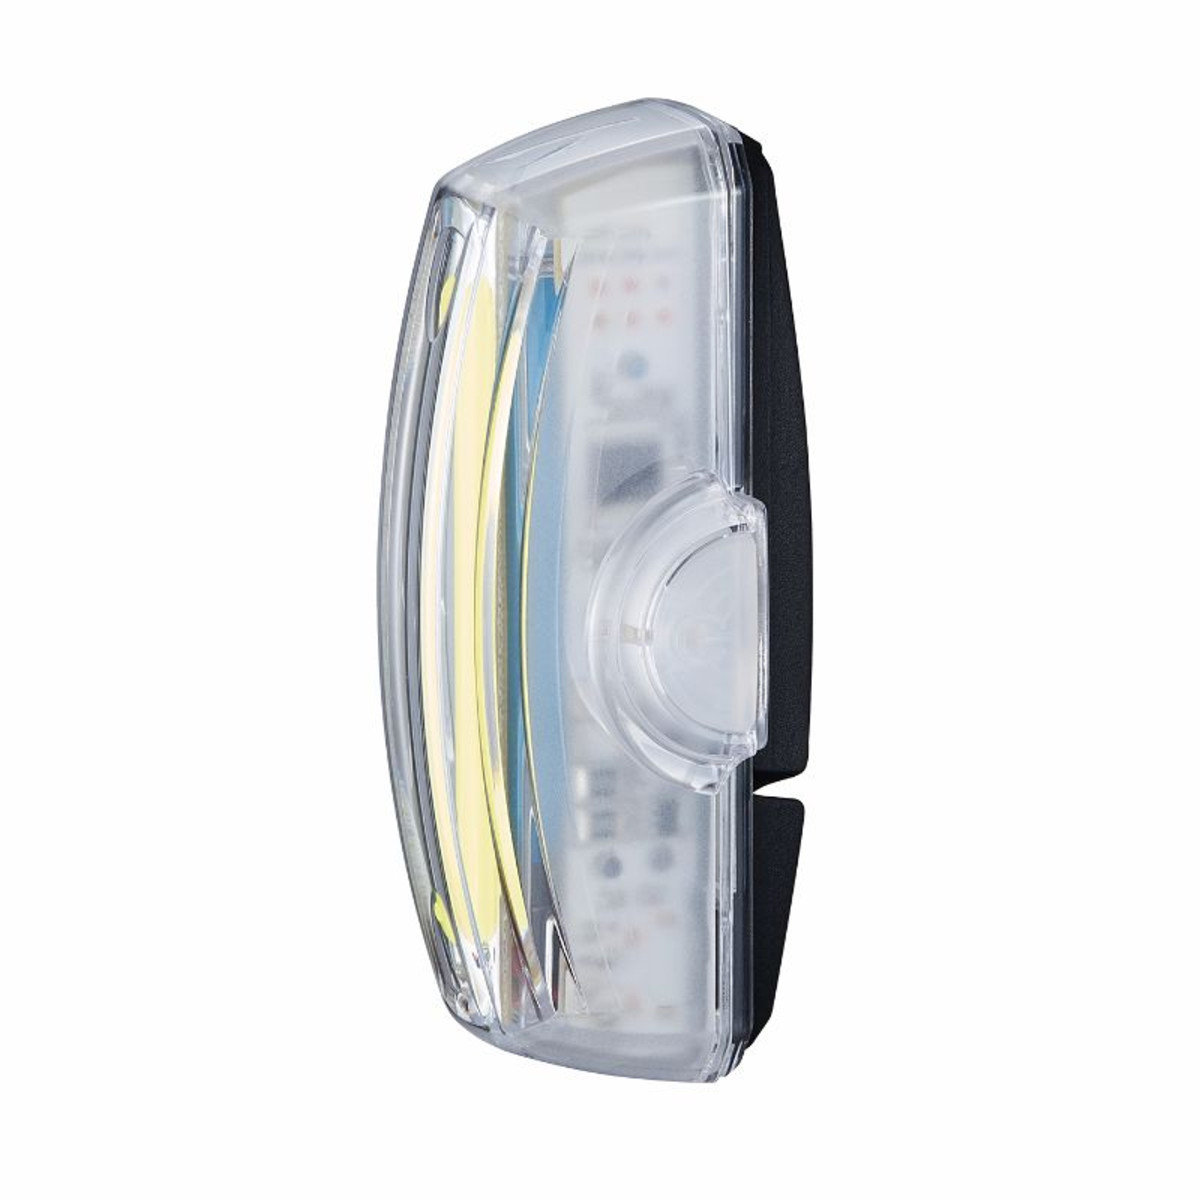 CAT EYE Cat Eye Safety Light front for RAPID-X2 TL-LD710-F USB Rechargeable